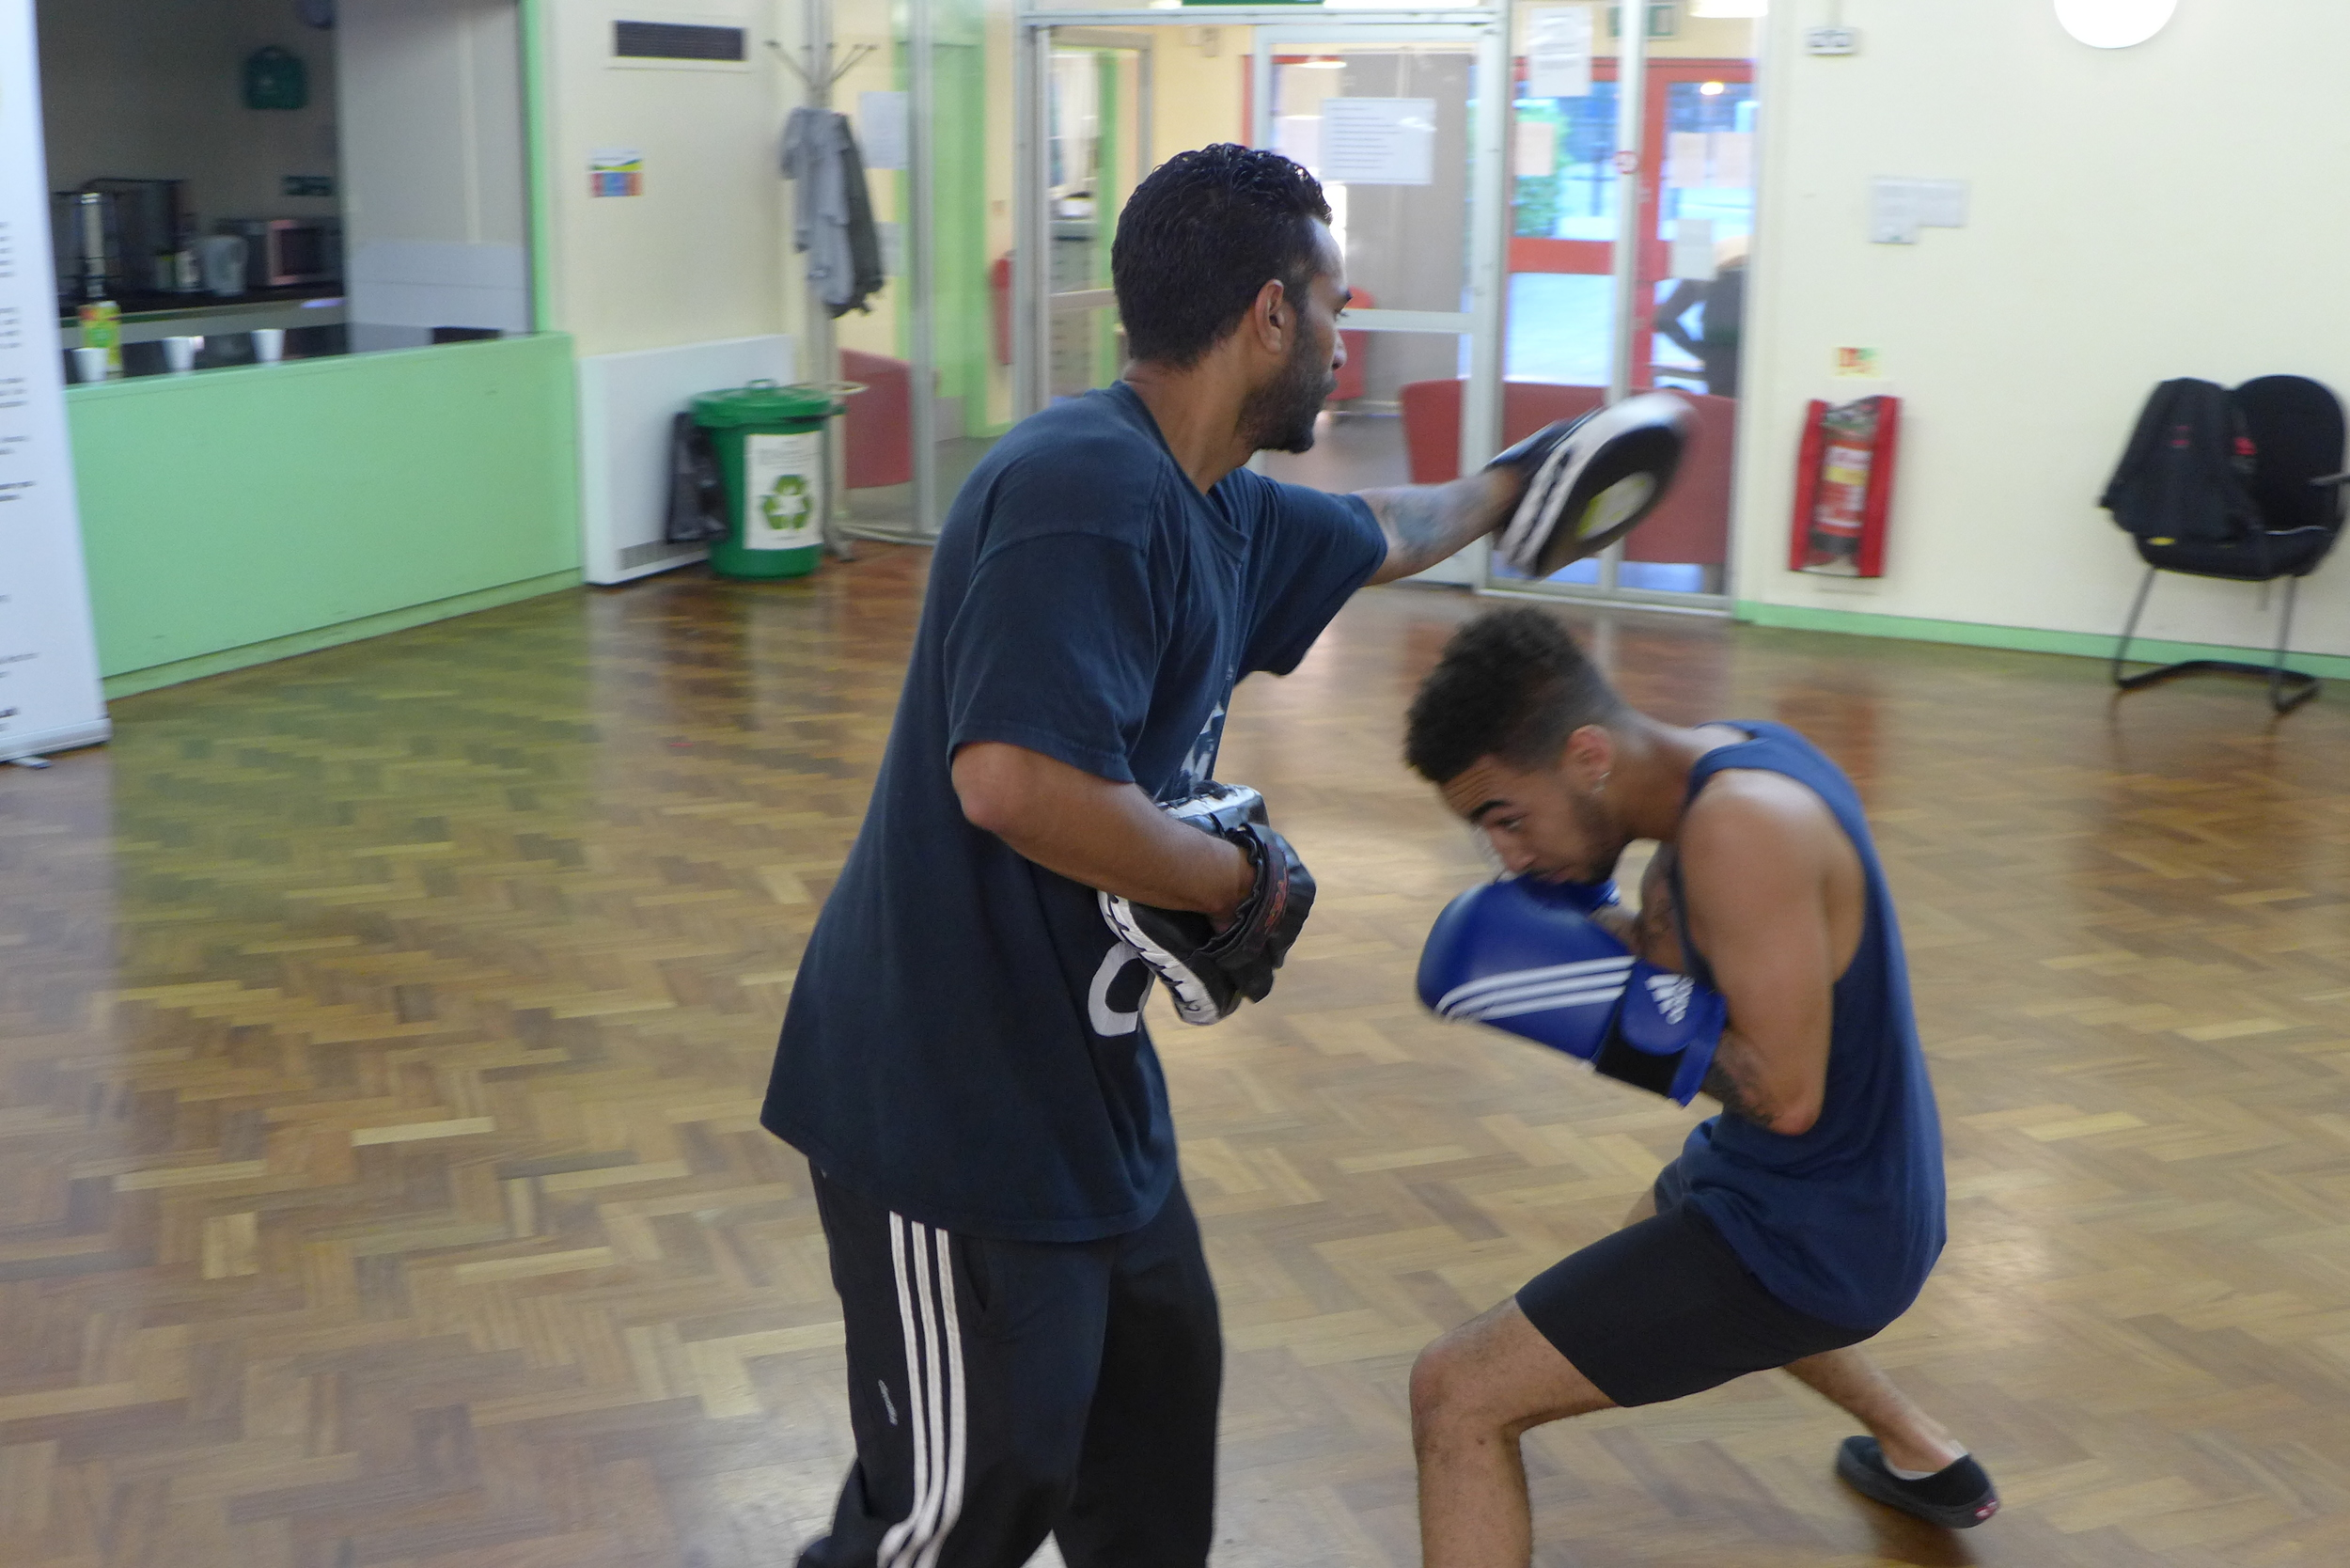 Student sparring with Boxing Trainer